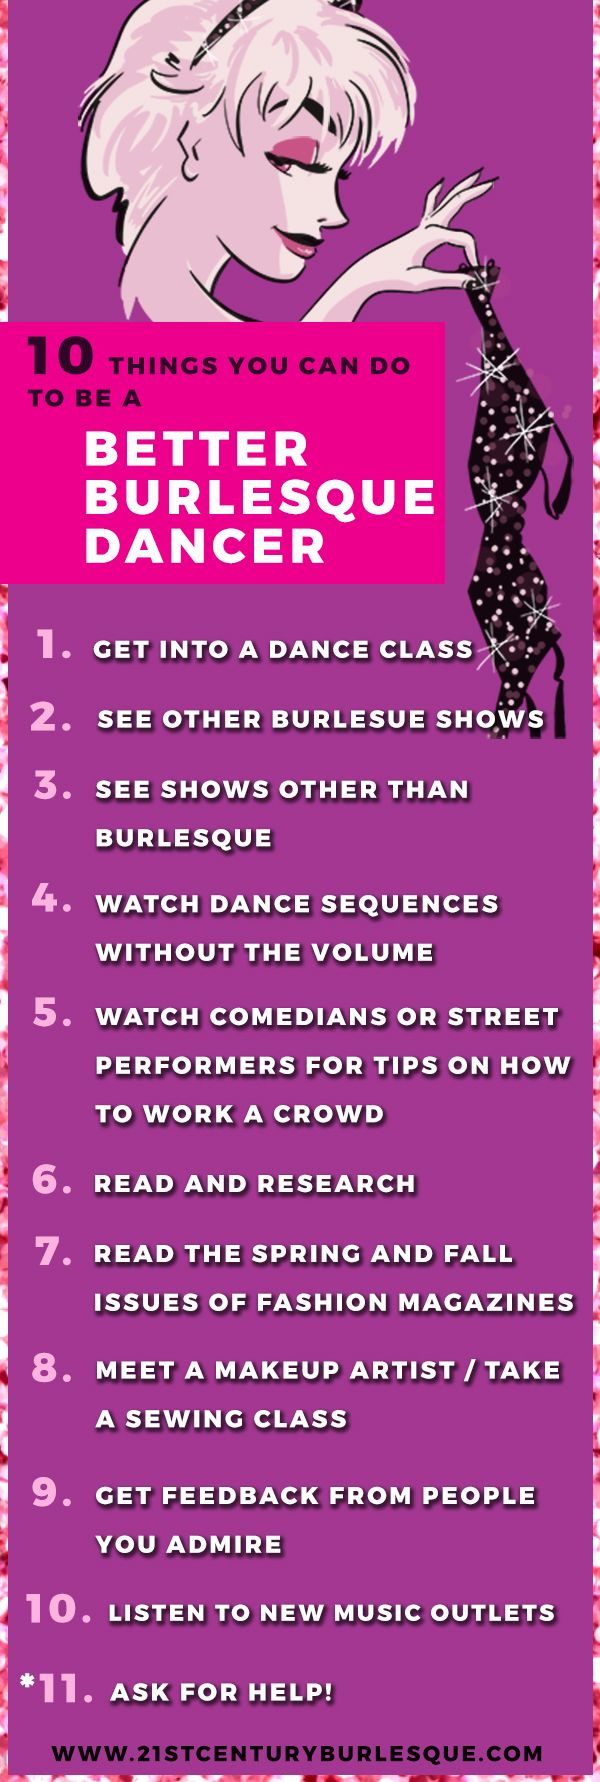 10 Things You Can Do to be a Better Burlesque Dancer Tutorial